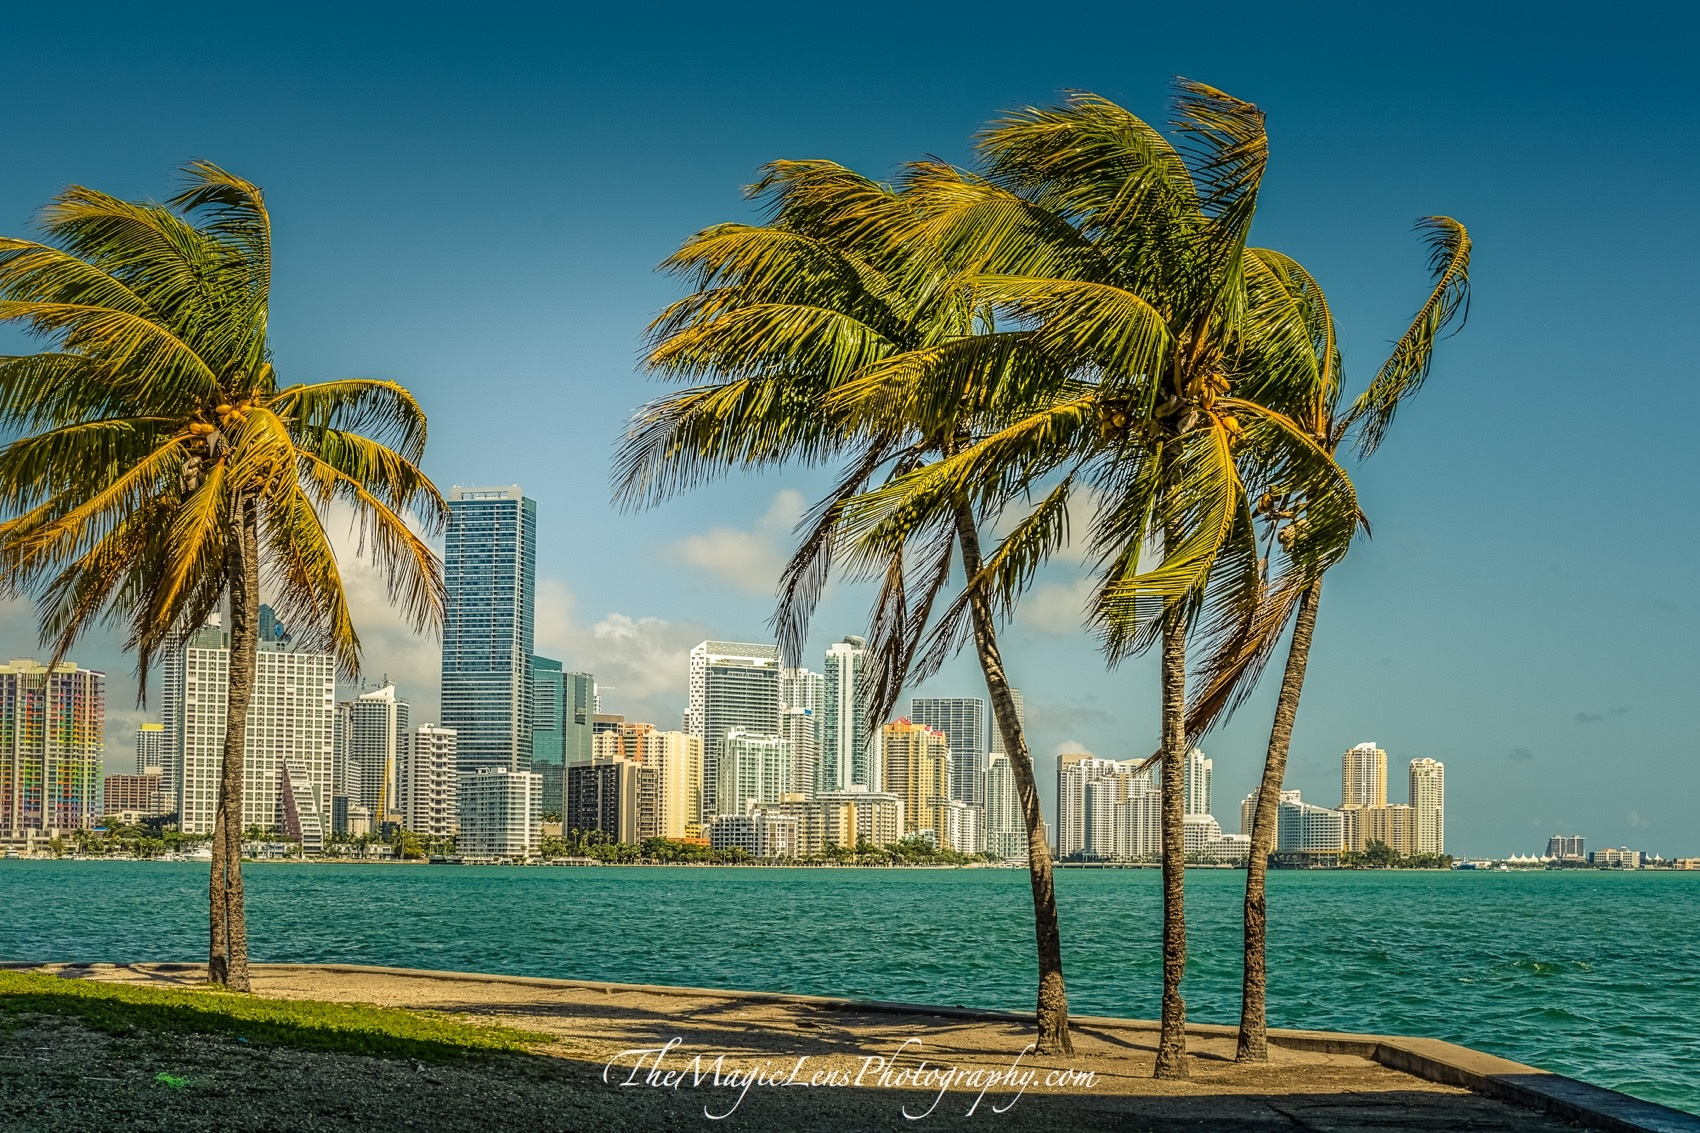 City of Miami. Capital of the Sun by themagiclensphotography